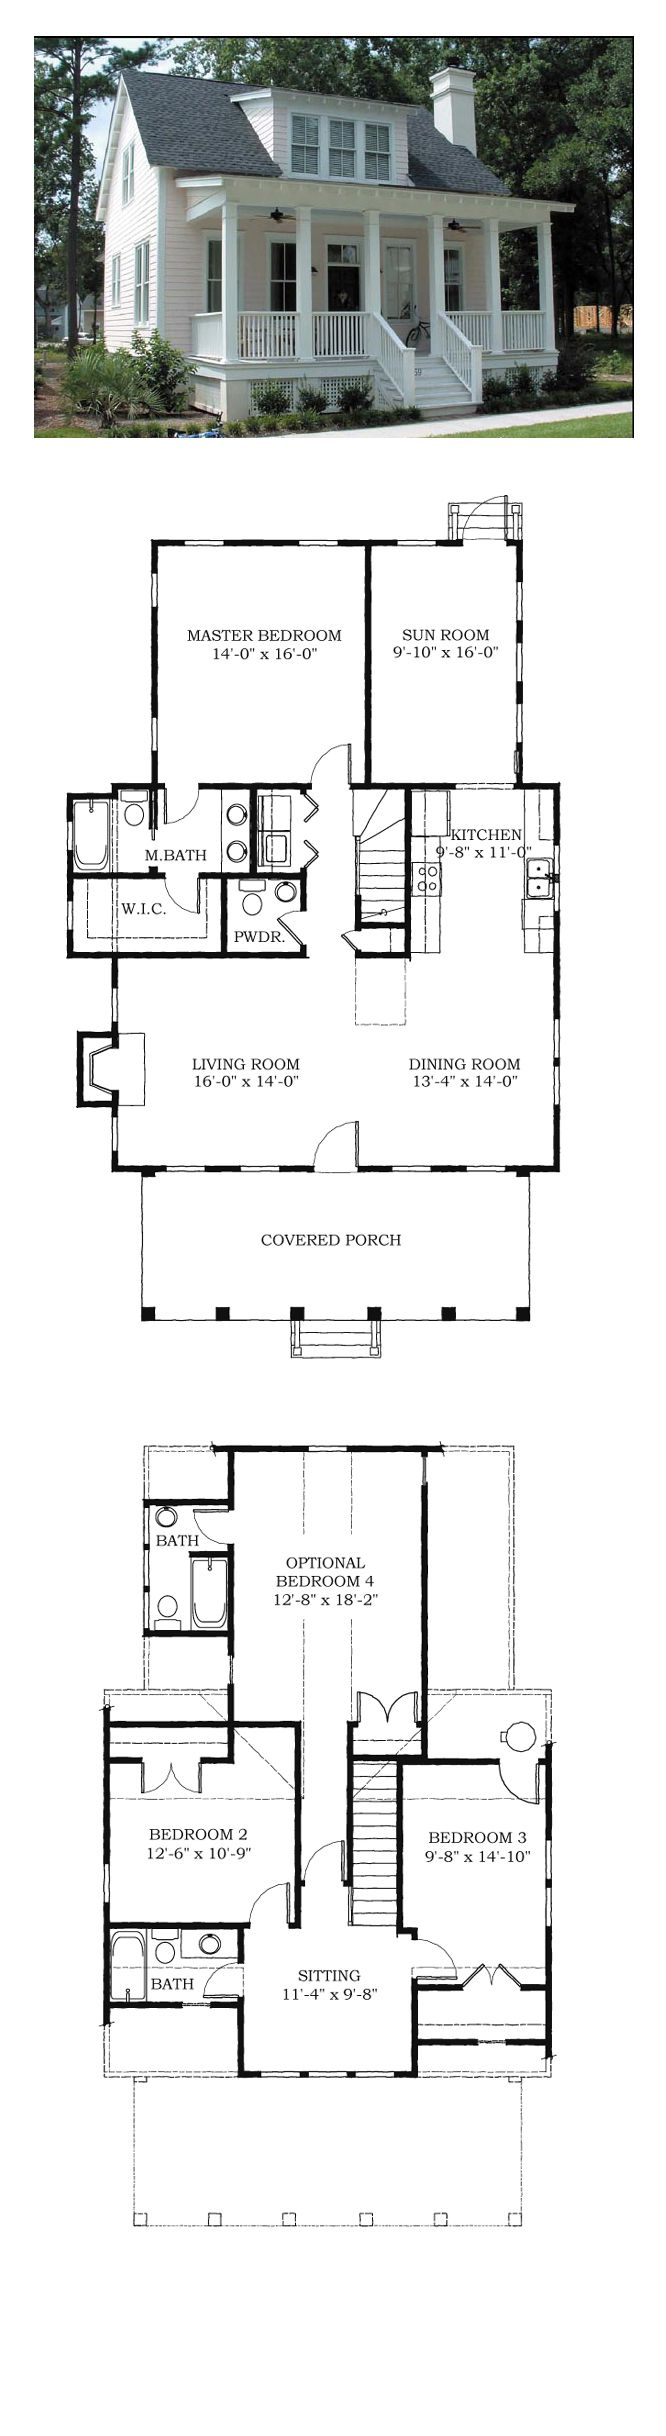 cool house plan id chp 38703 total living area 1783 sq - Small House Blueprints 2